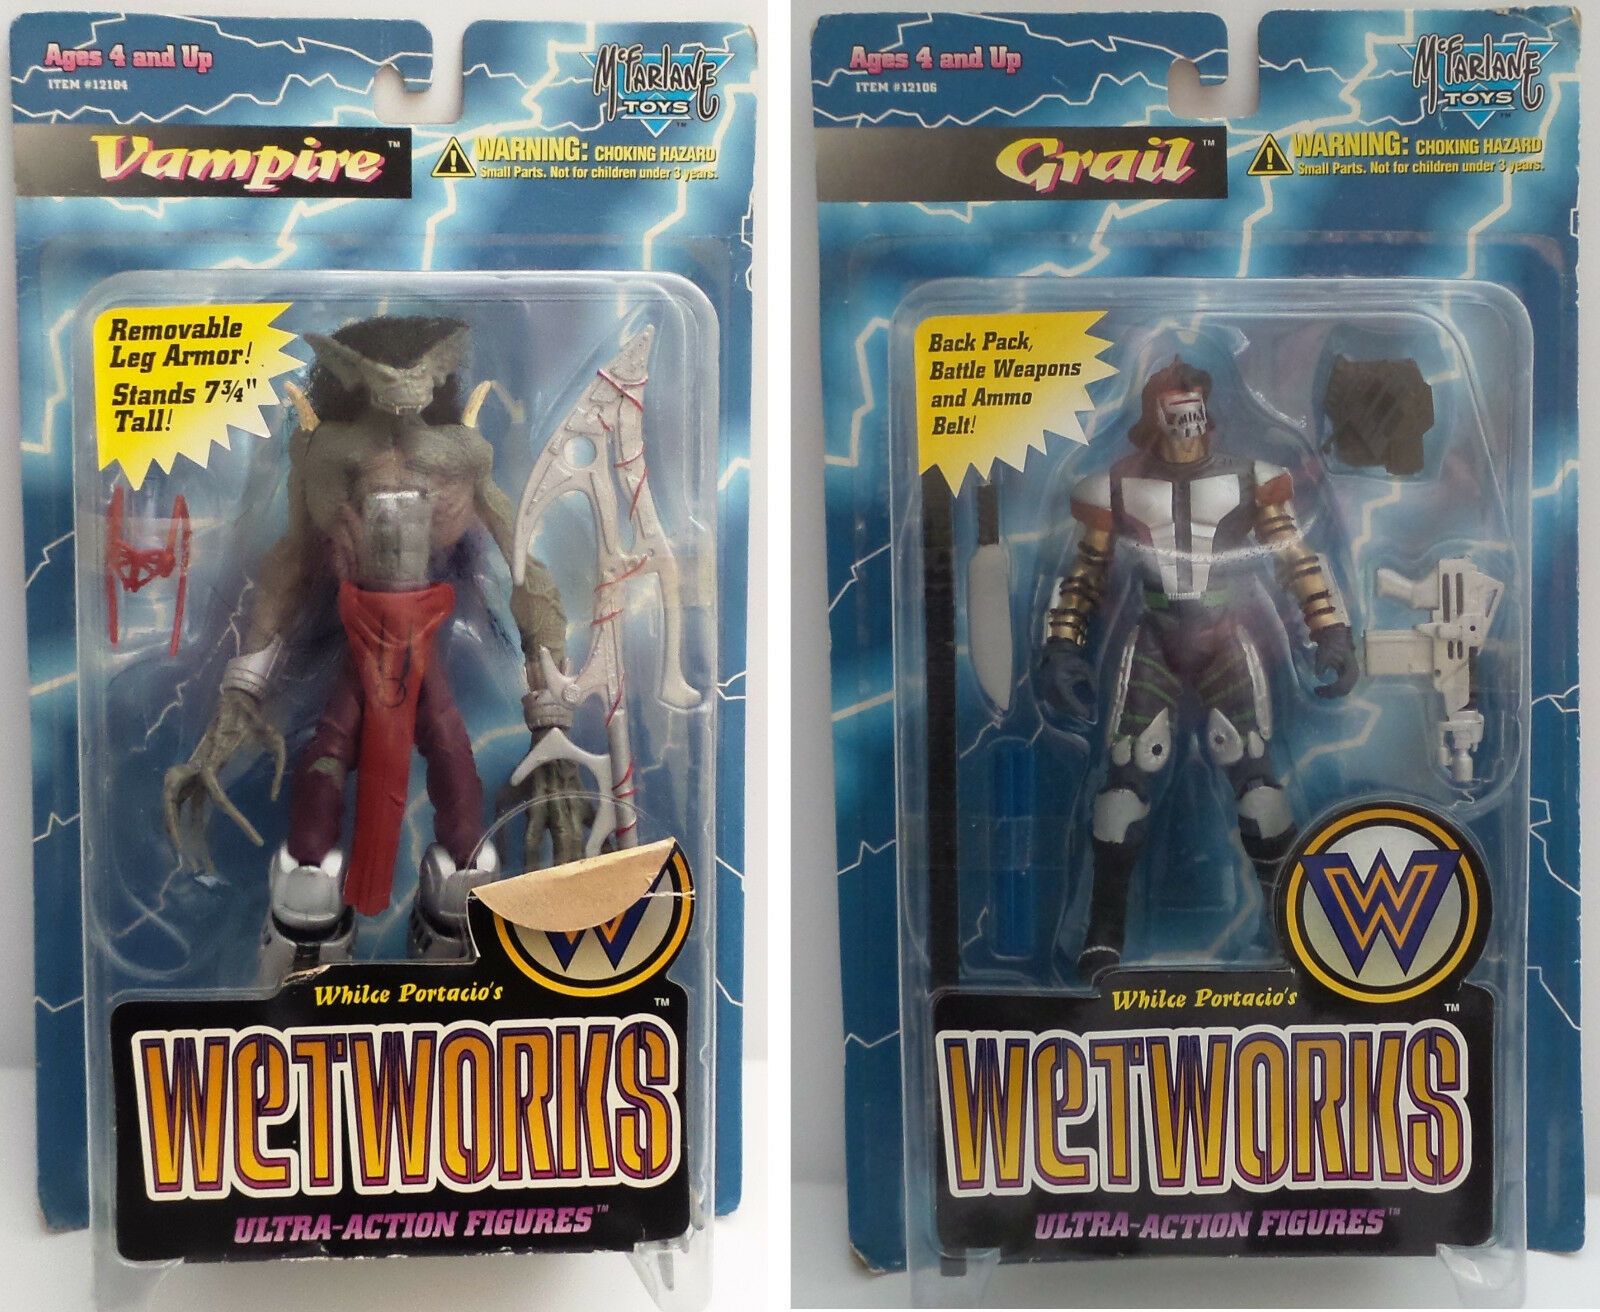 WETWORKS   GRAIL & VAMPIRE CARDED ACTION FIGURES BY MCFALNE TOYS IN 1995 (BY)